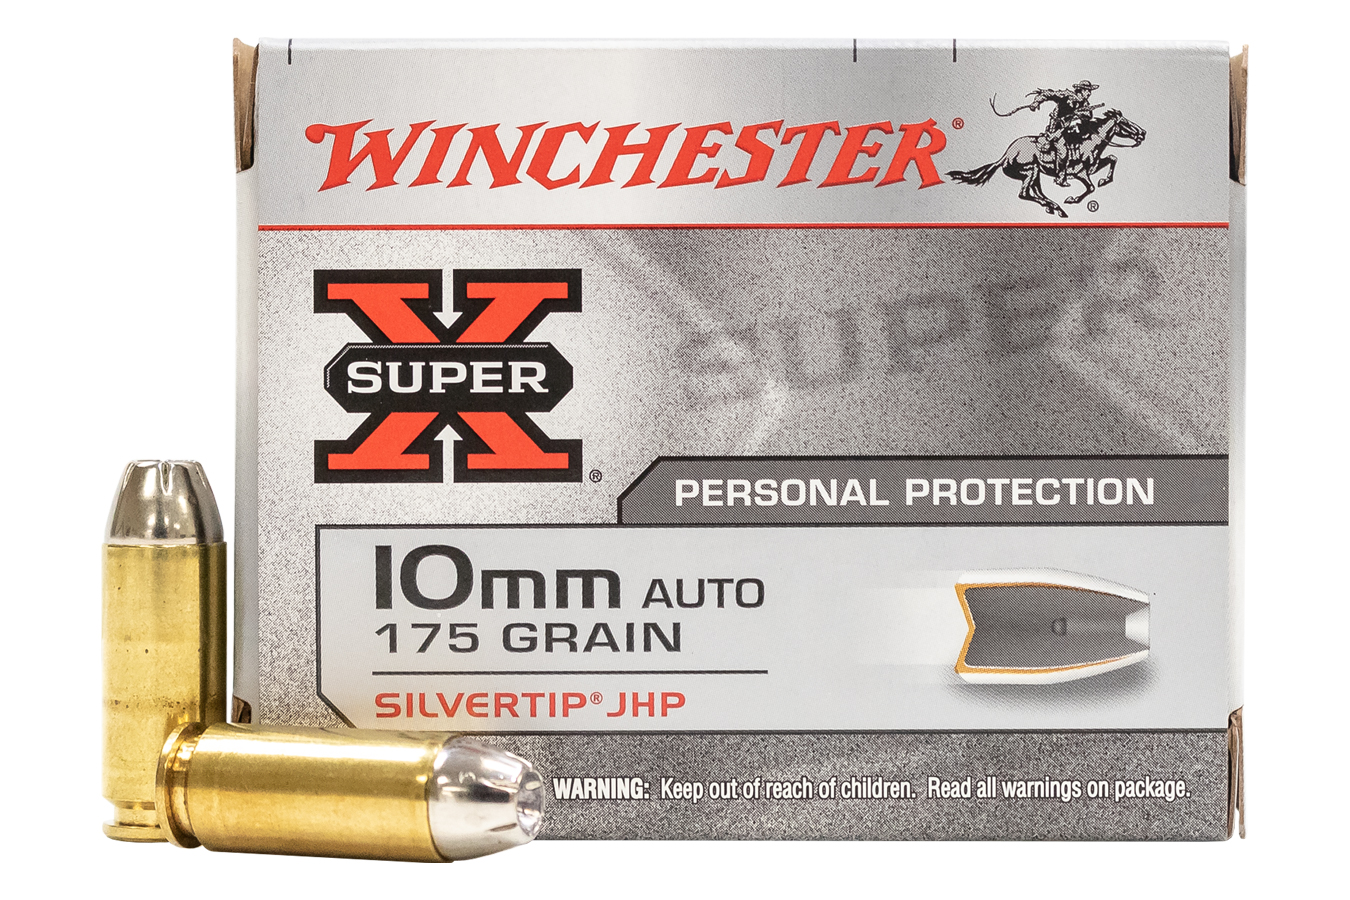 WINCHESTER AMMO 10MM 175 GR. SILVERTIP HOLLOW POINT